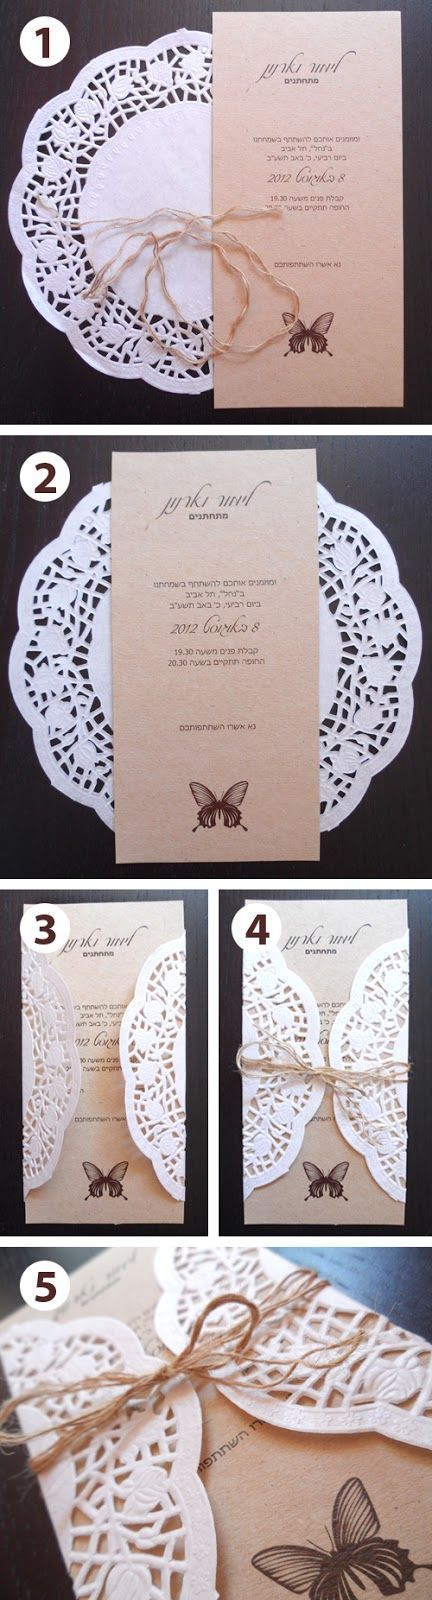 [tps_header]Save your budget and try your hand at homemade wedding invitations. From beautiful burlap to awesome 3D cards – we have some awesome ideas for you t